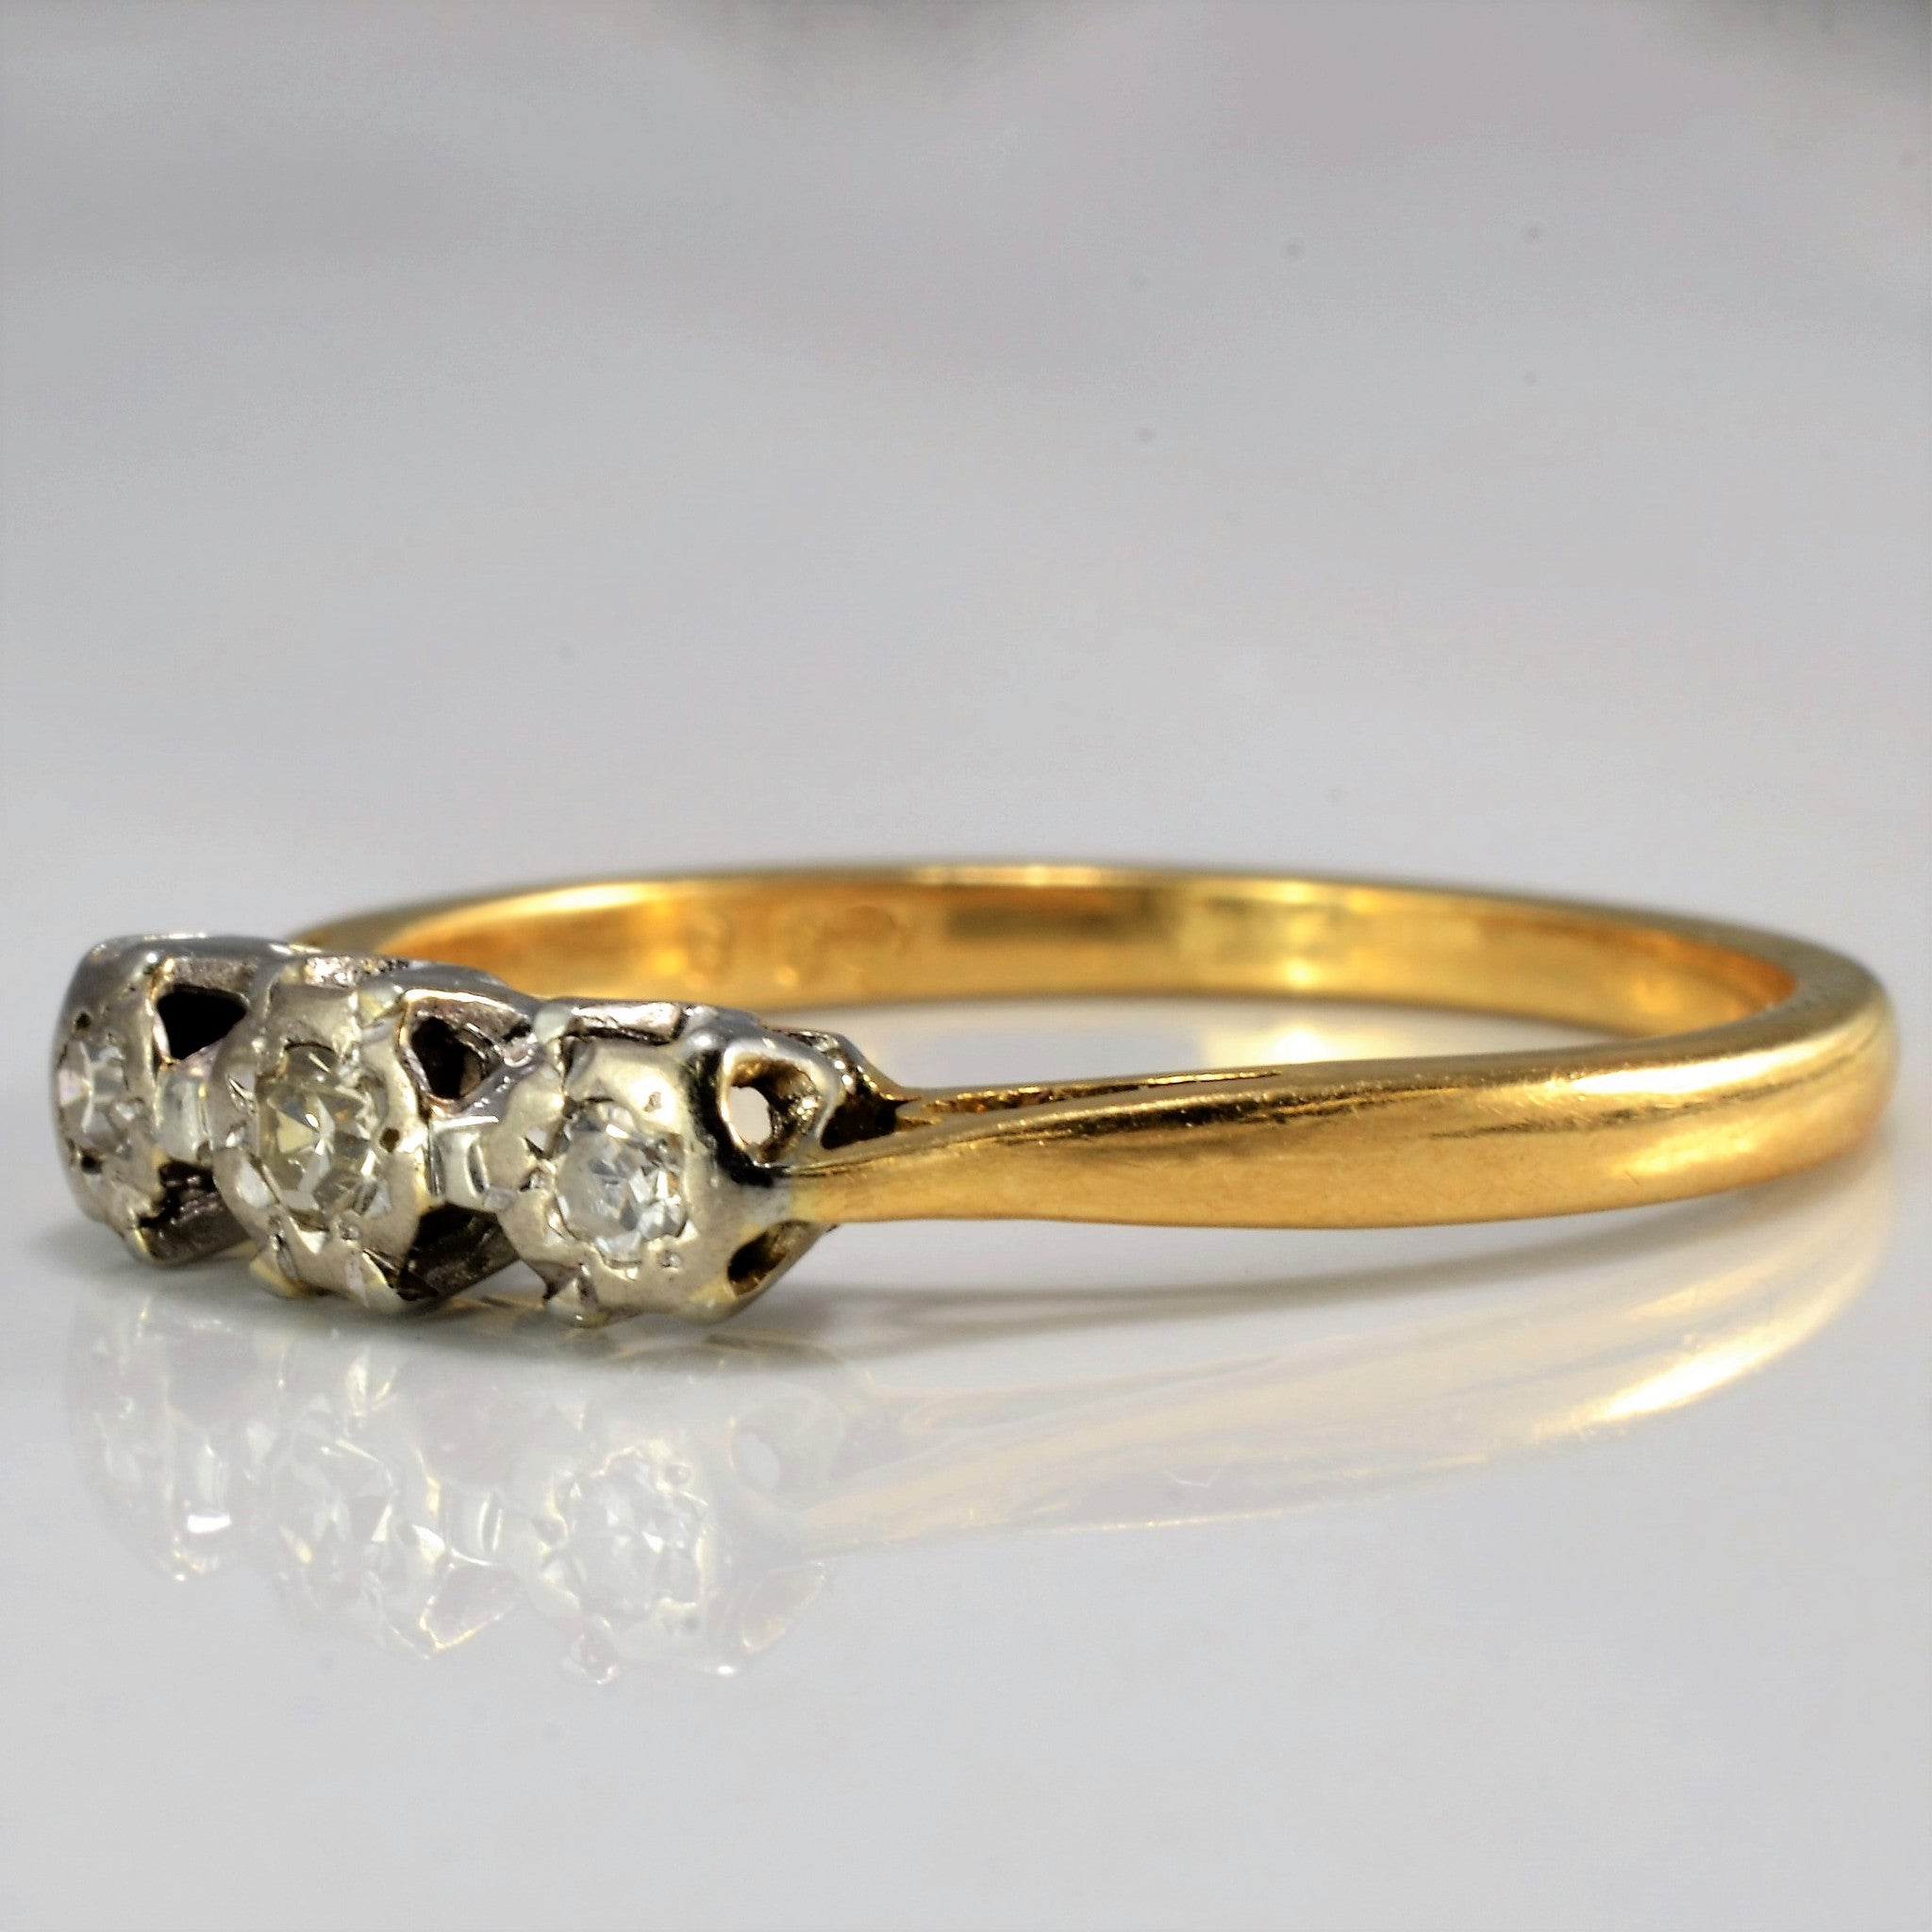 1960's Three Stone Ring | 0.08 ctw, SZ 6.25 |